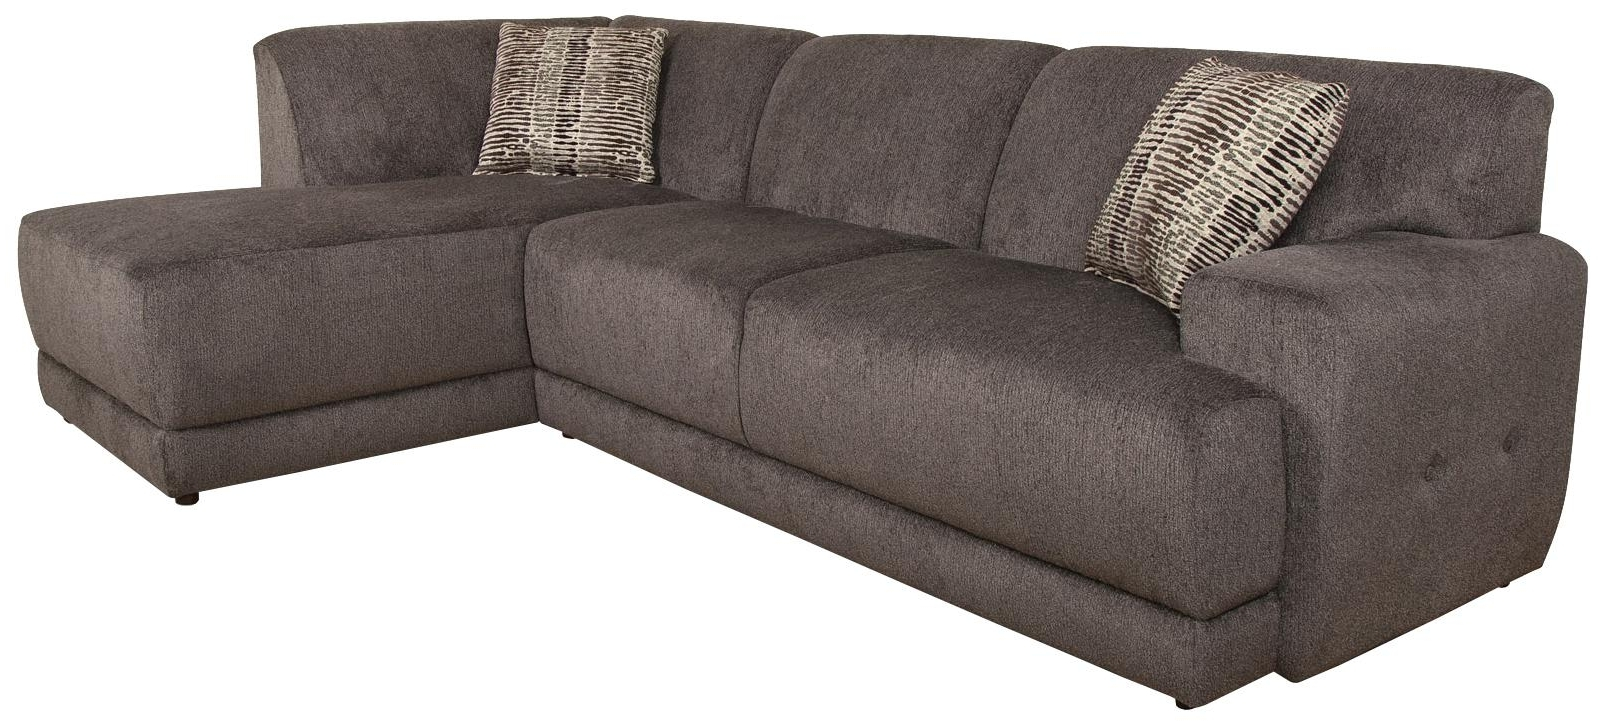 Well Known England Sectional Sofas Intended For England Cole Contemporary Sectional Sofa With Right Facing Chaise (View 11 of 20)